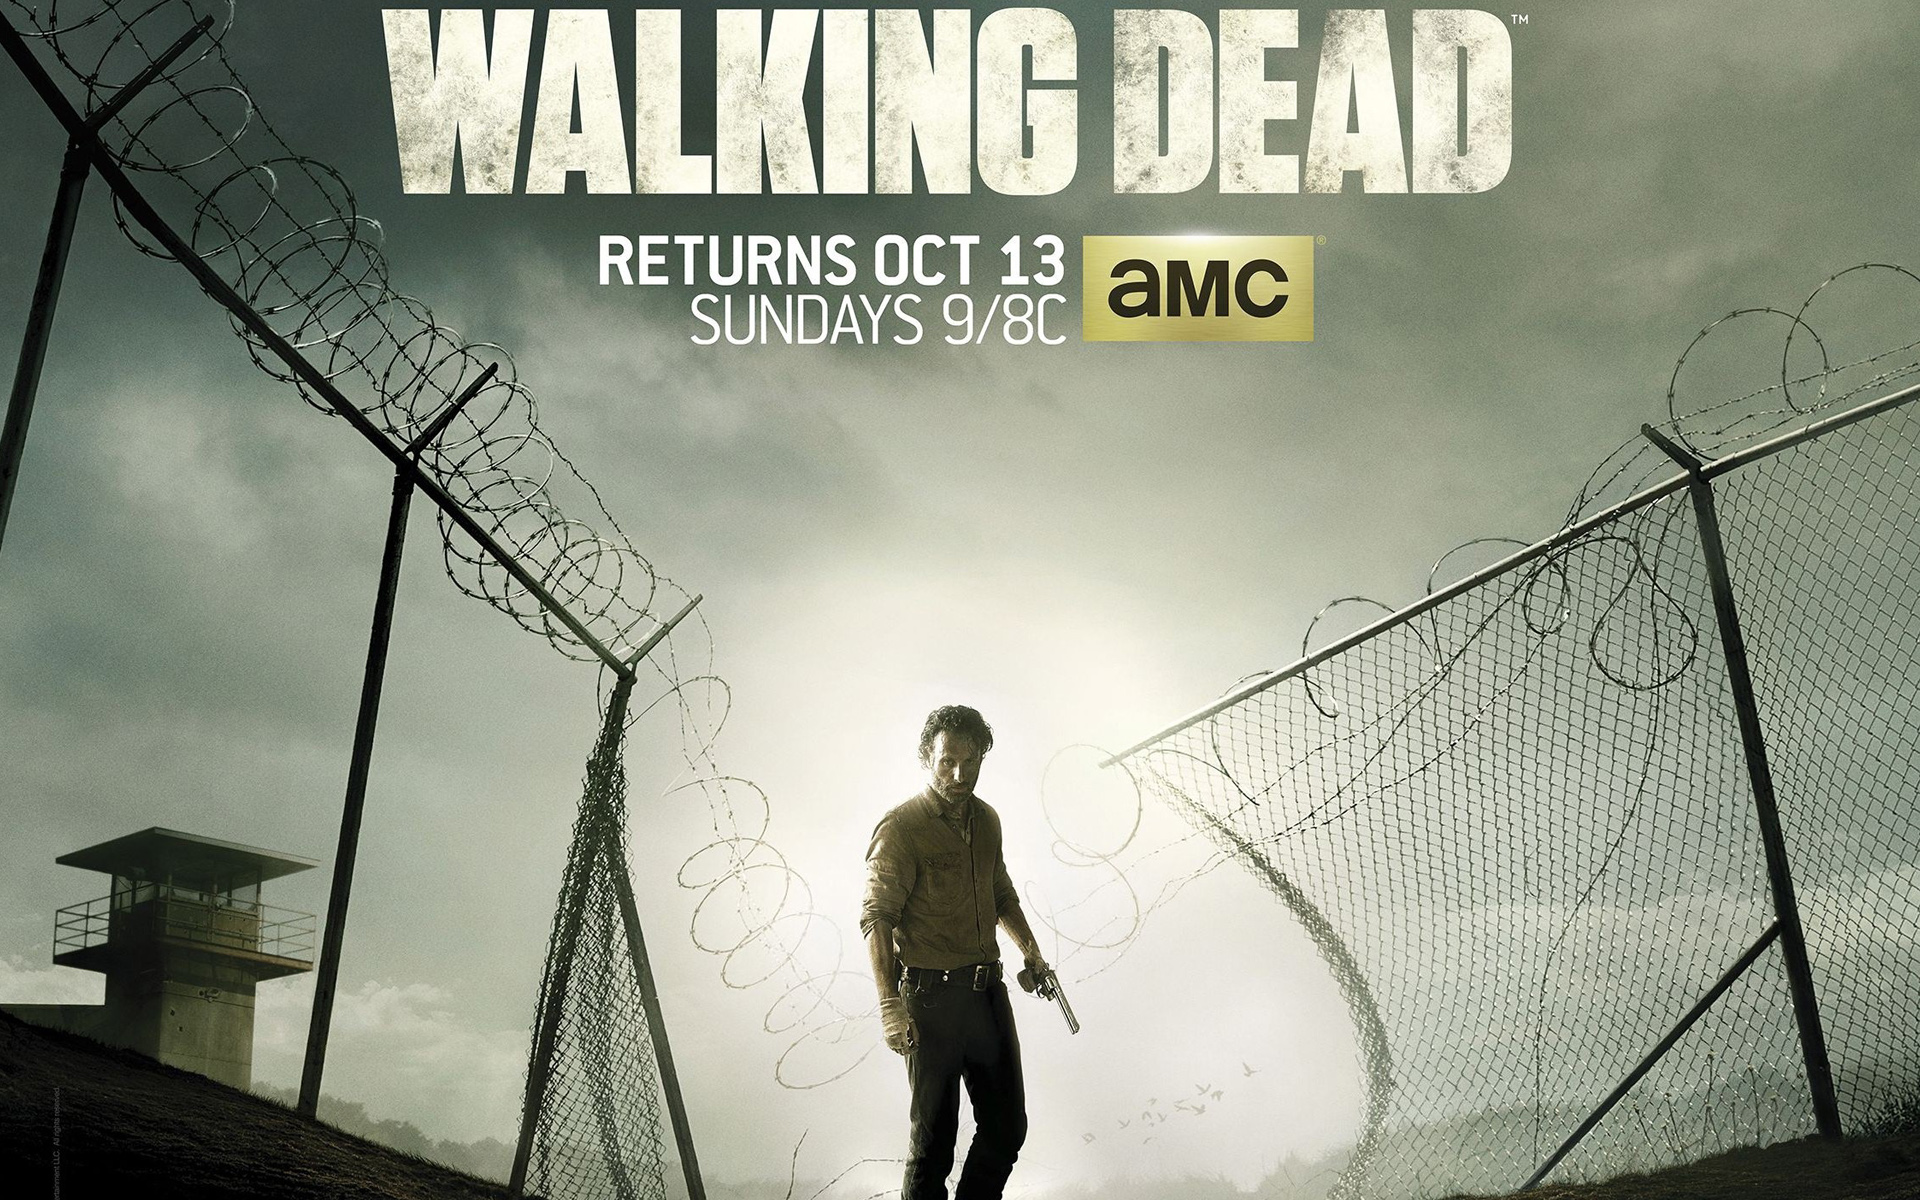 The Walking Dead Season 4 Wallpaper